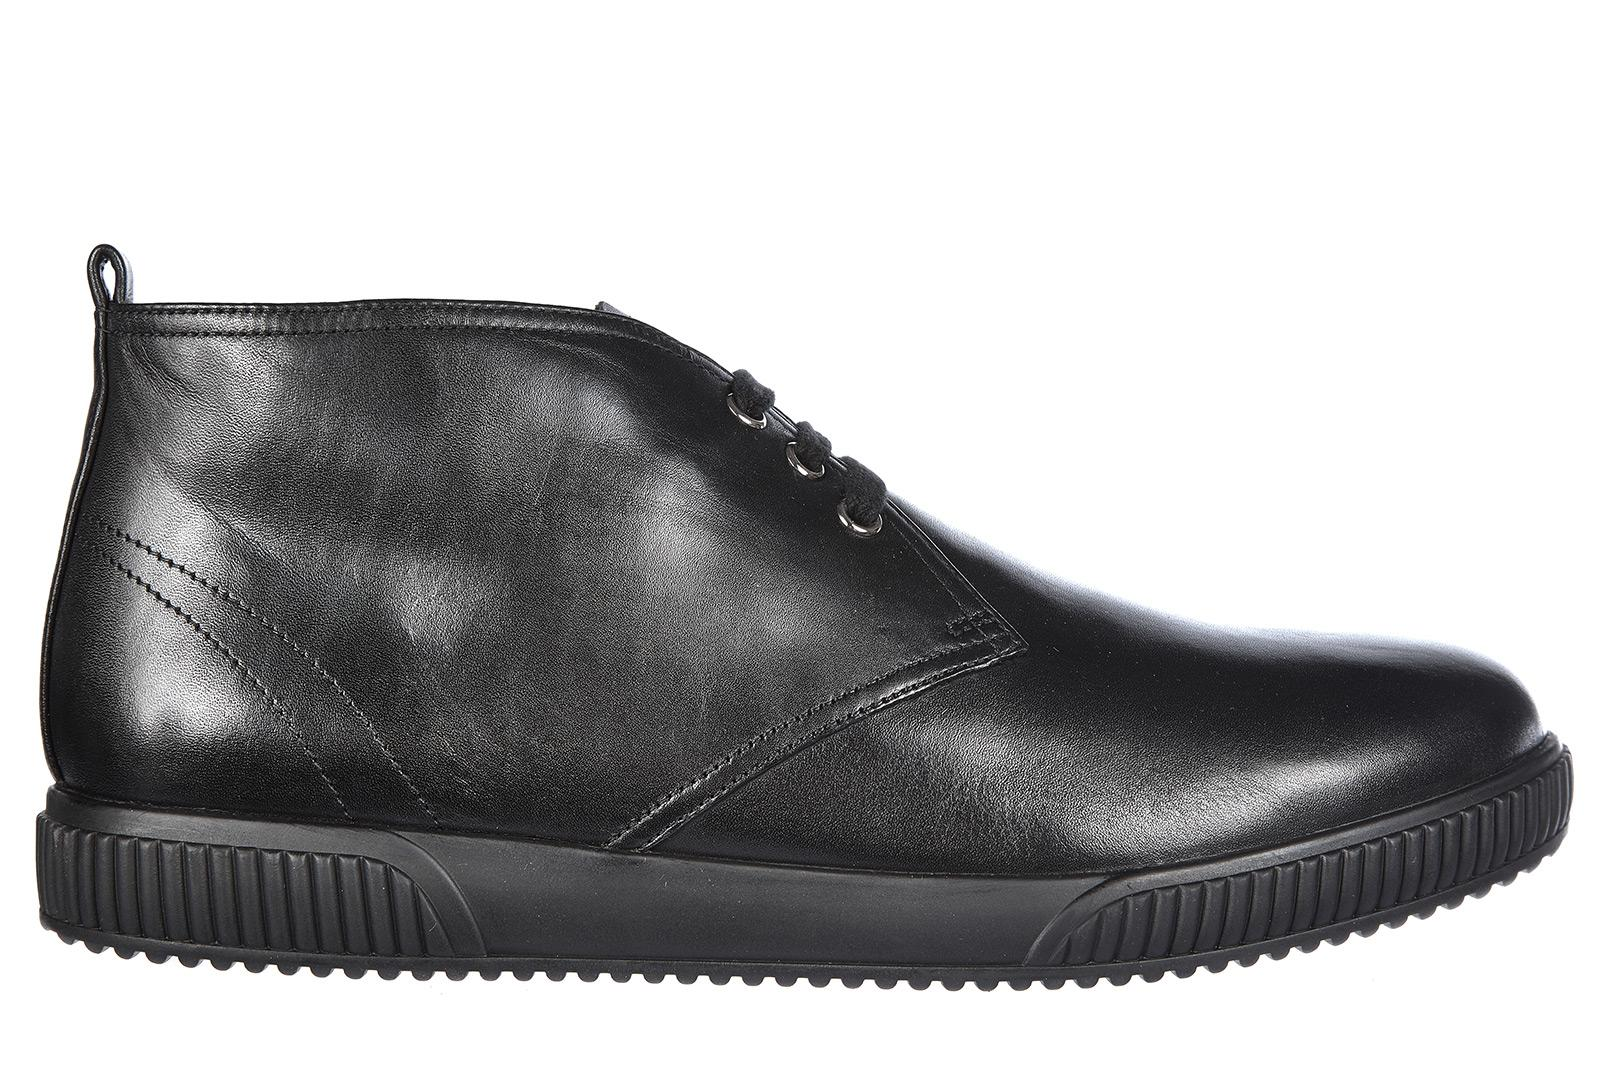 Prada Men's Leather Desert Boots Lace Up Ankle Boots In Black